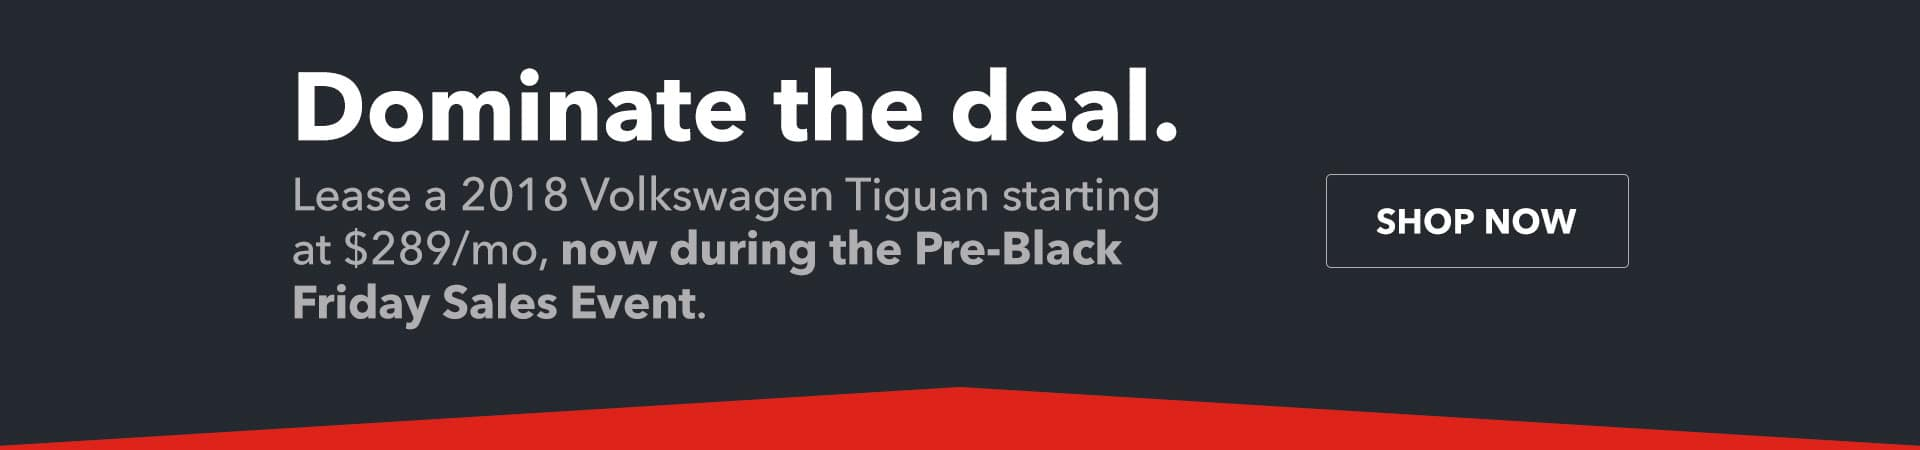 Dominate the Deal - Pre-Black Friday